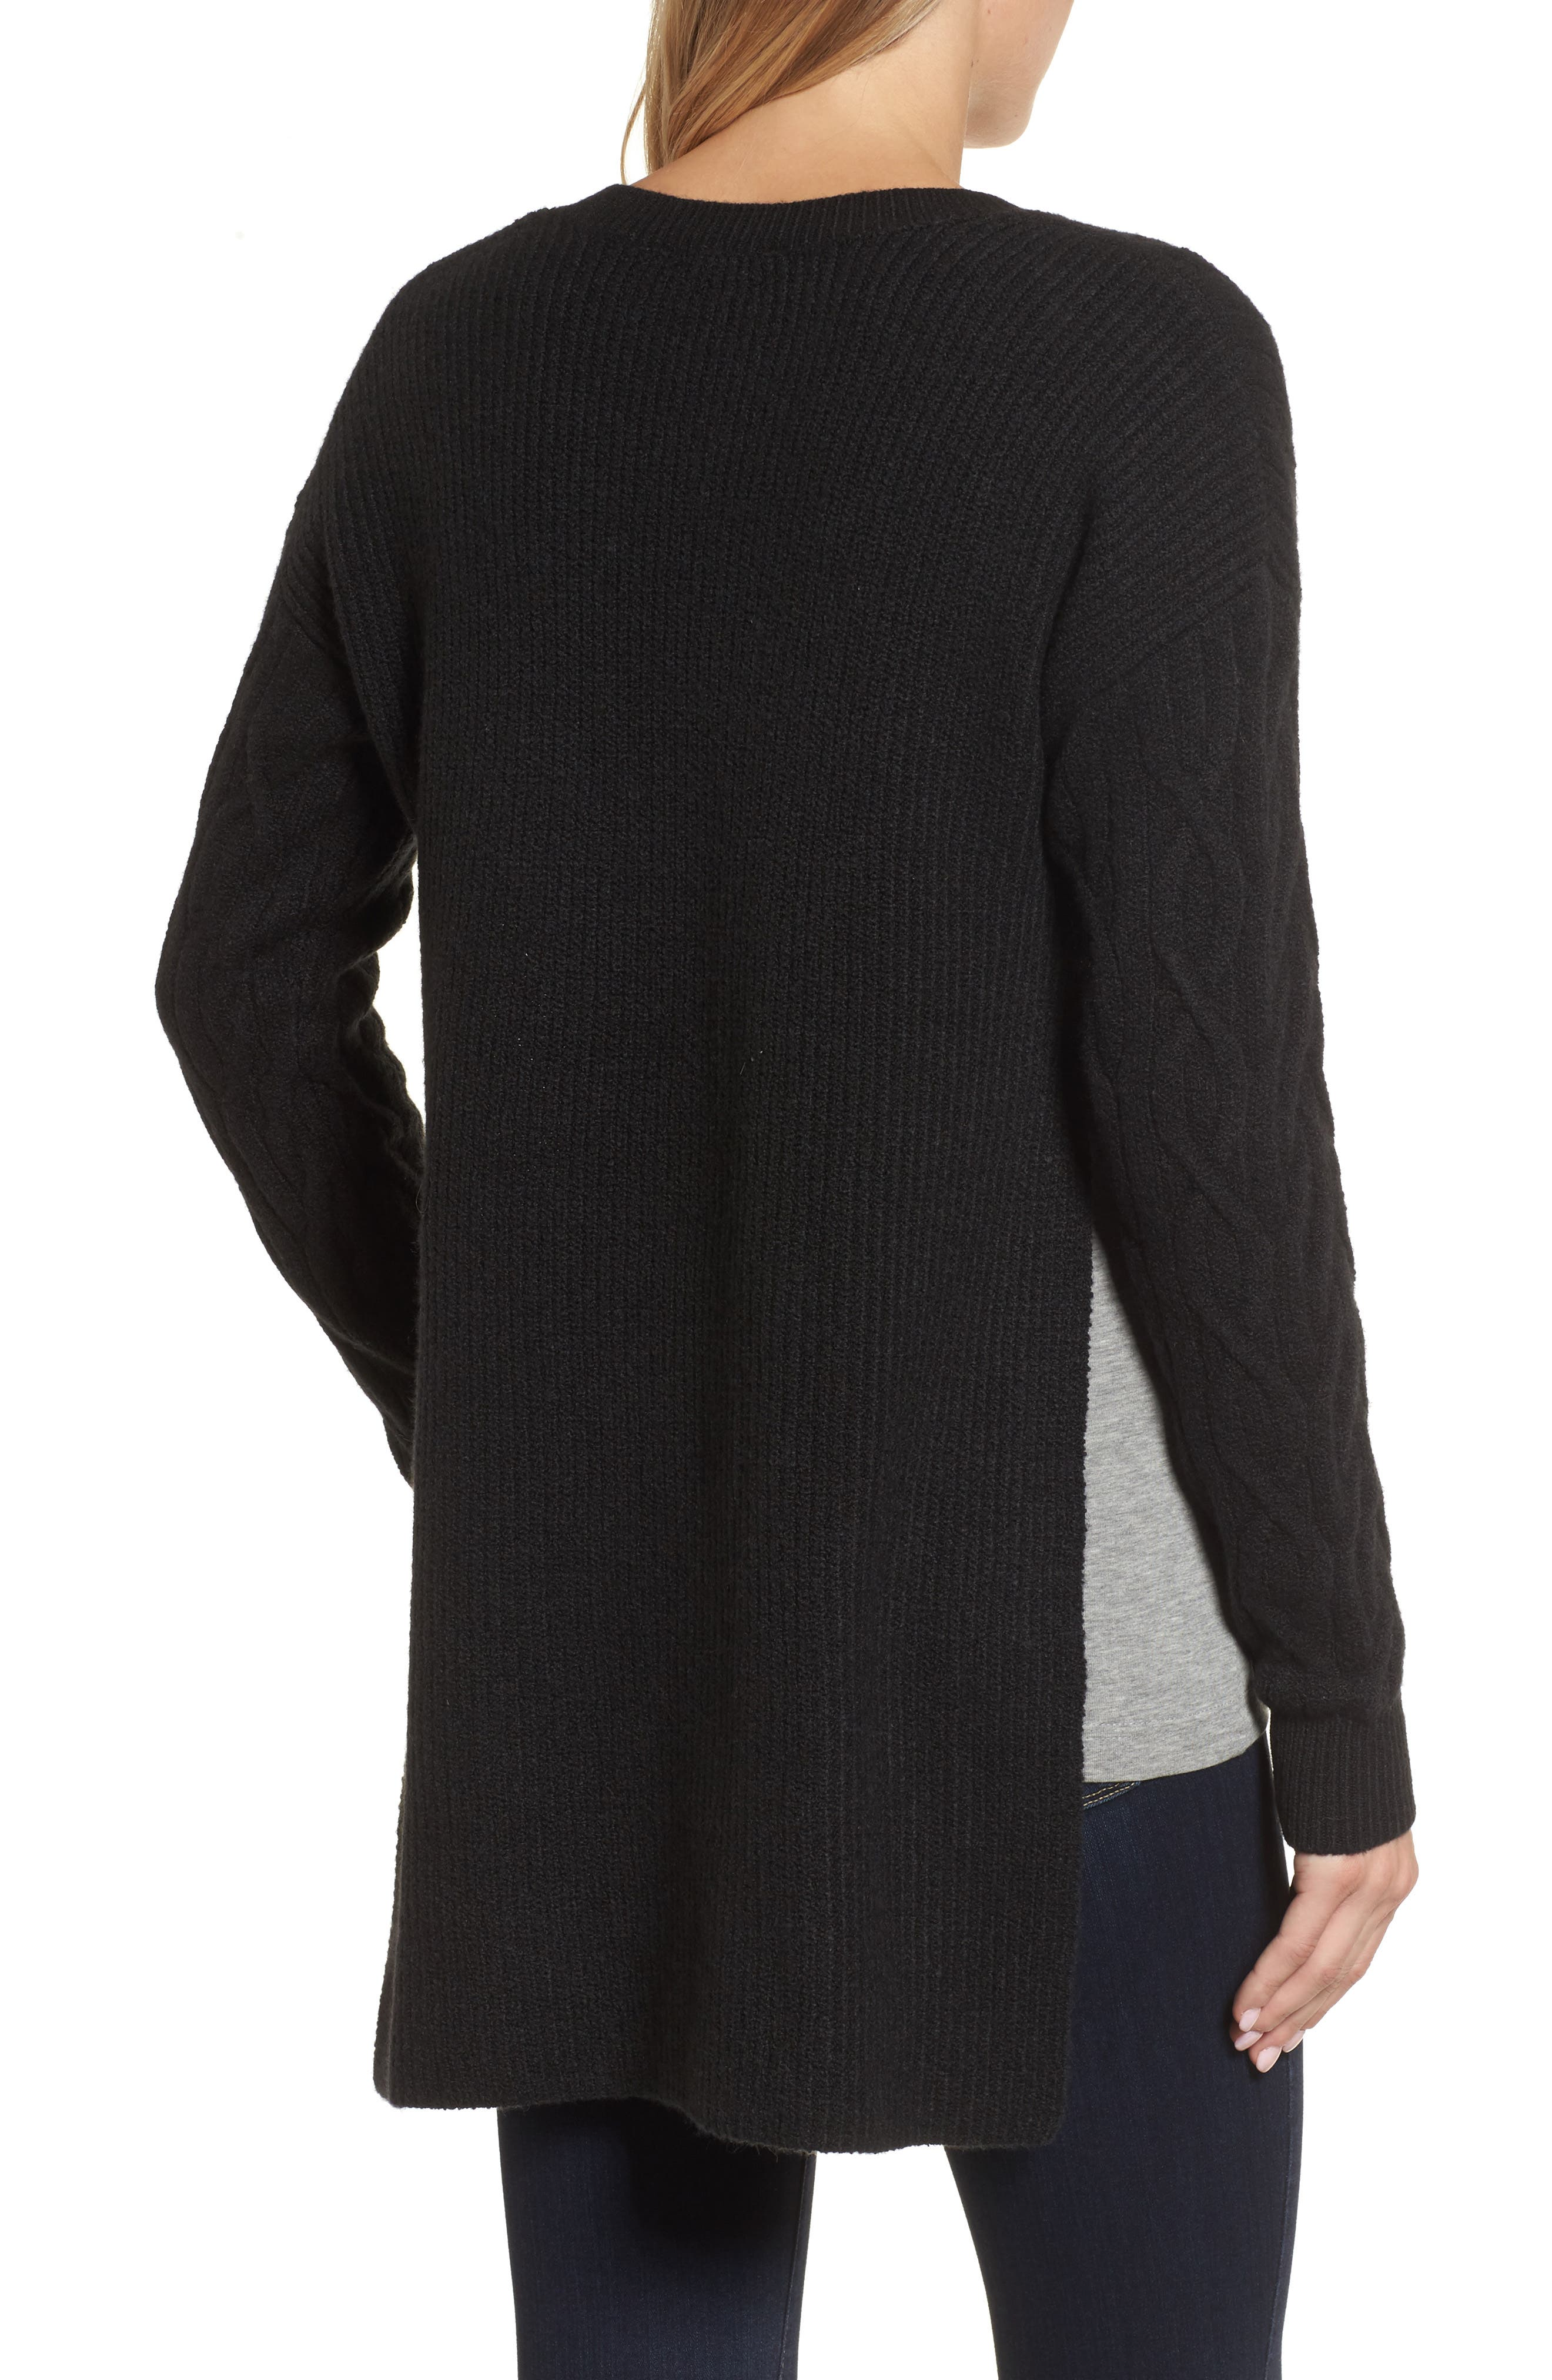 Irregular Cable Knit Sweater,                             Alternate thumbnail 2, color,                             Black